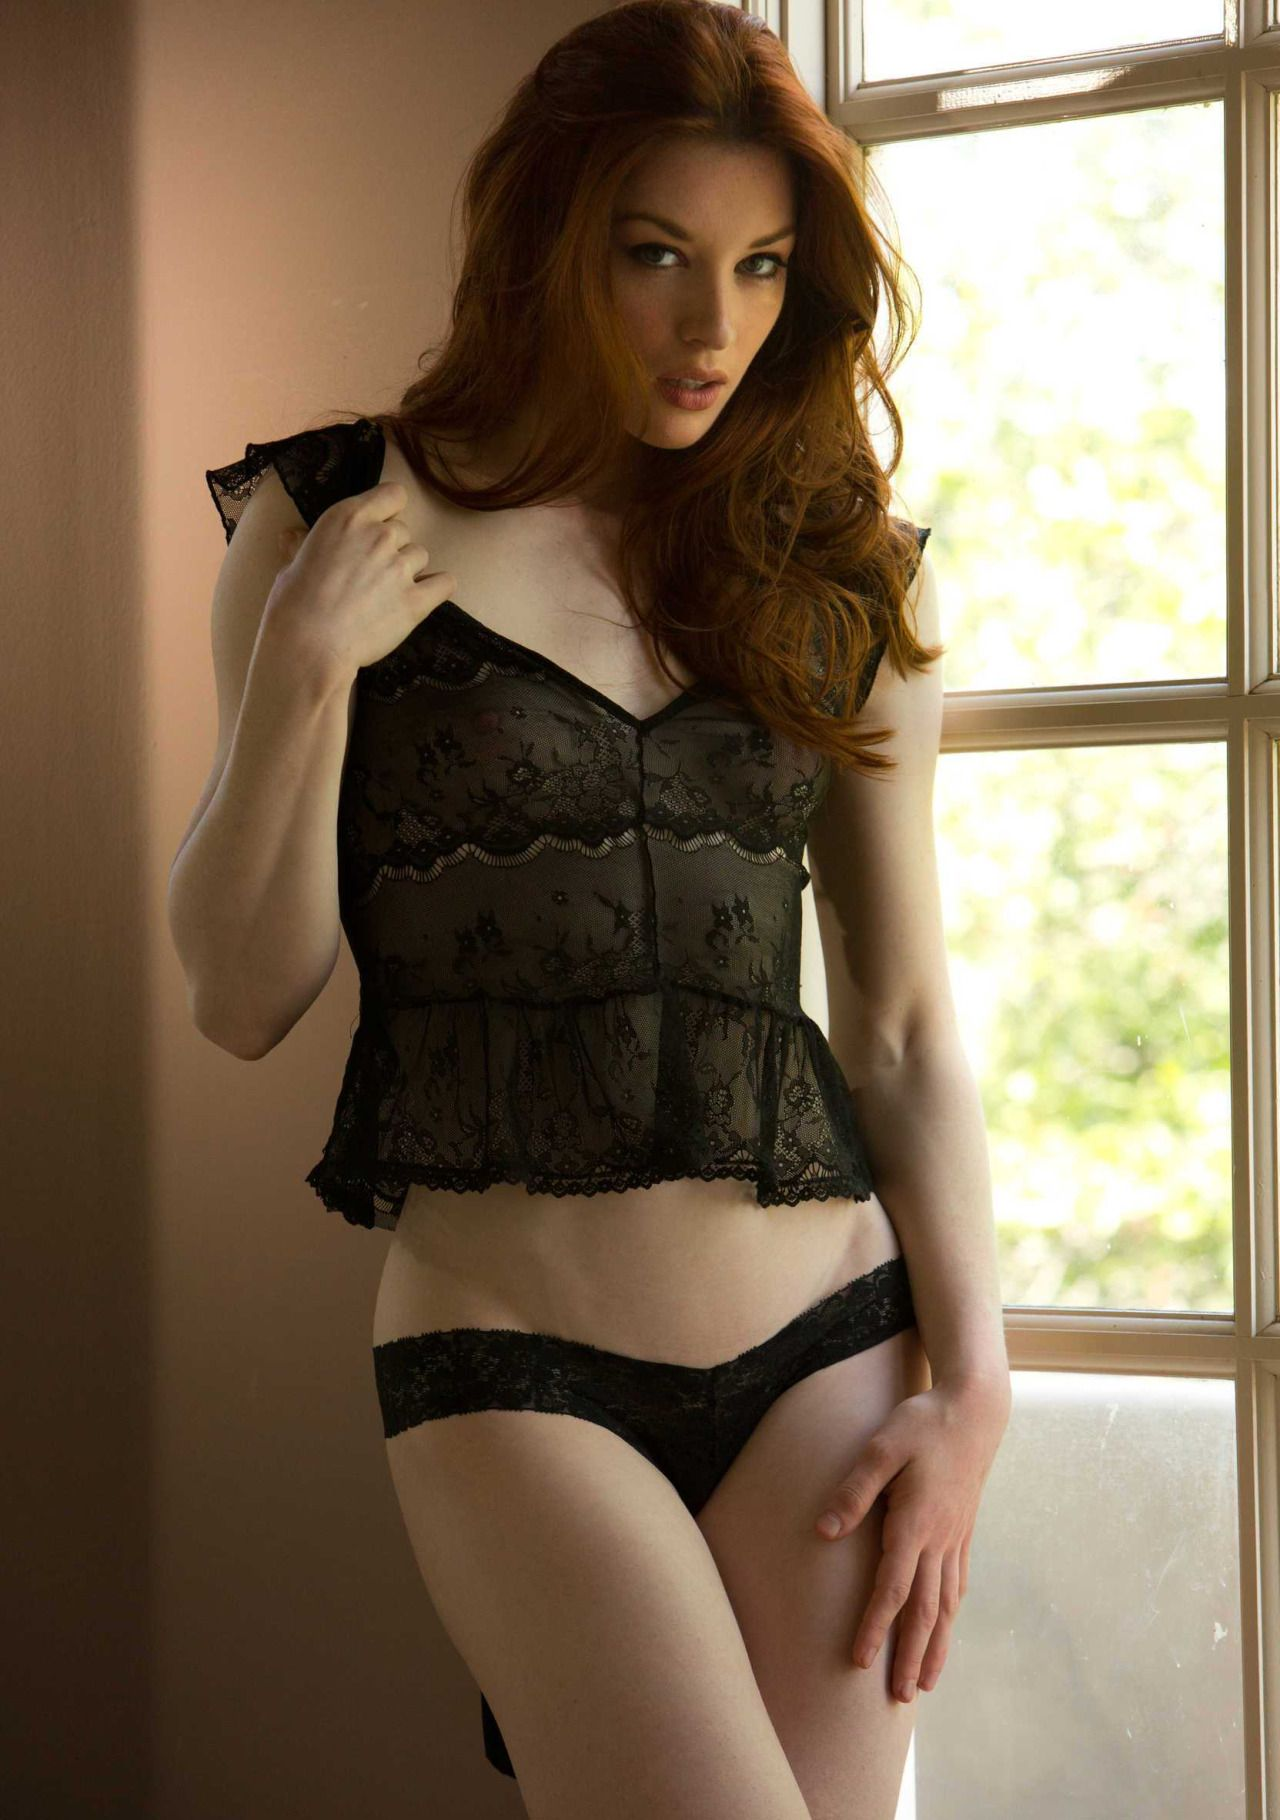 Stoya Black Lingerie Cheap pingregory michaels on stoya 'jessica stoyadinovich